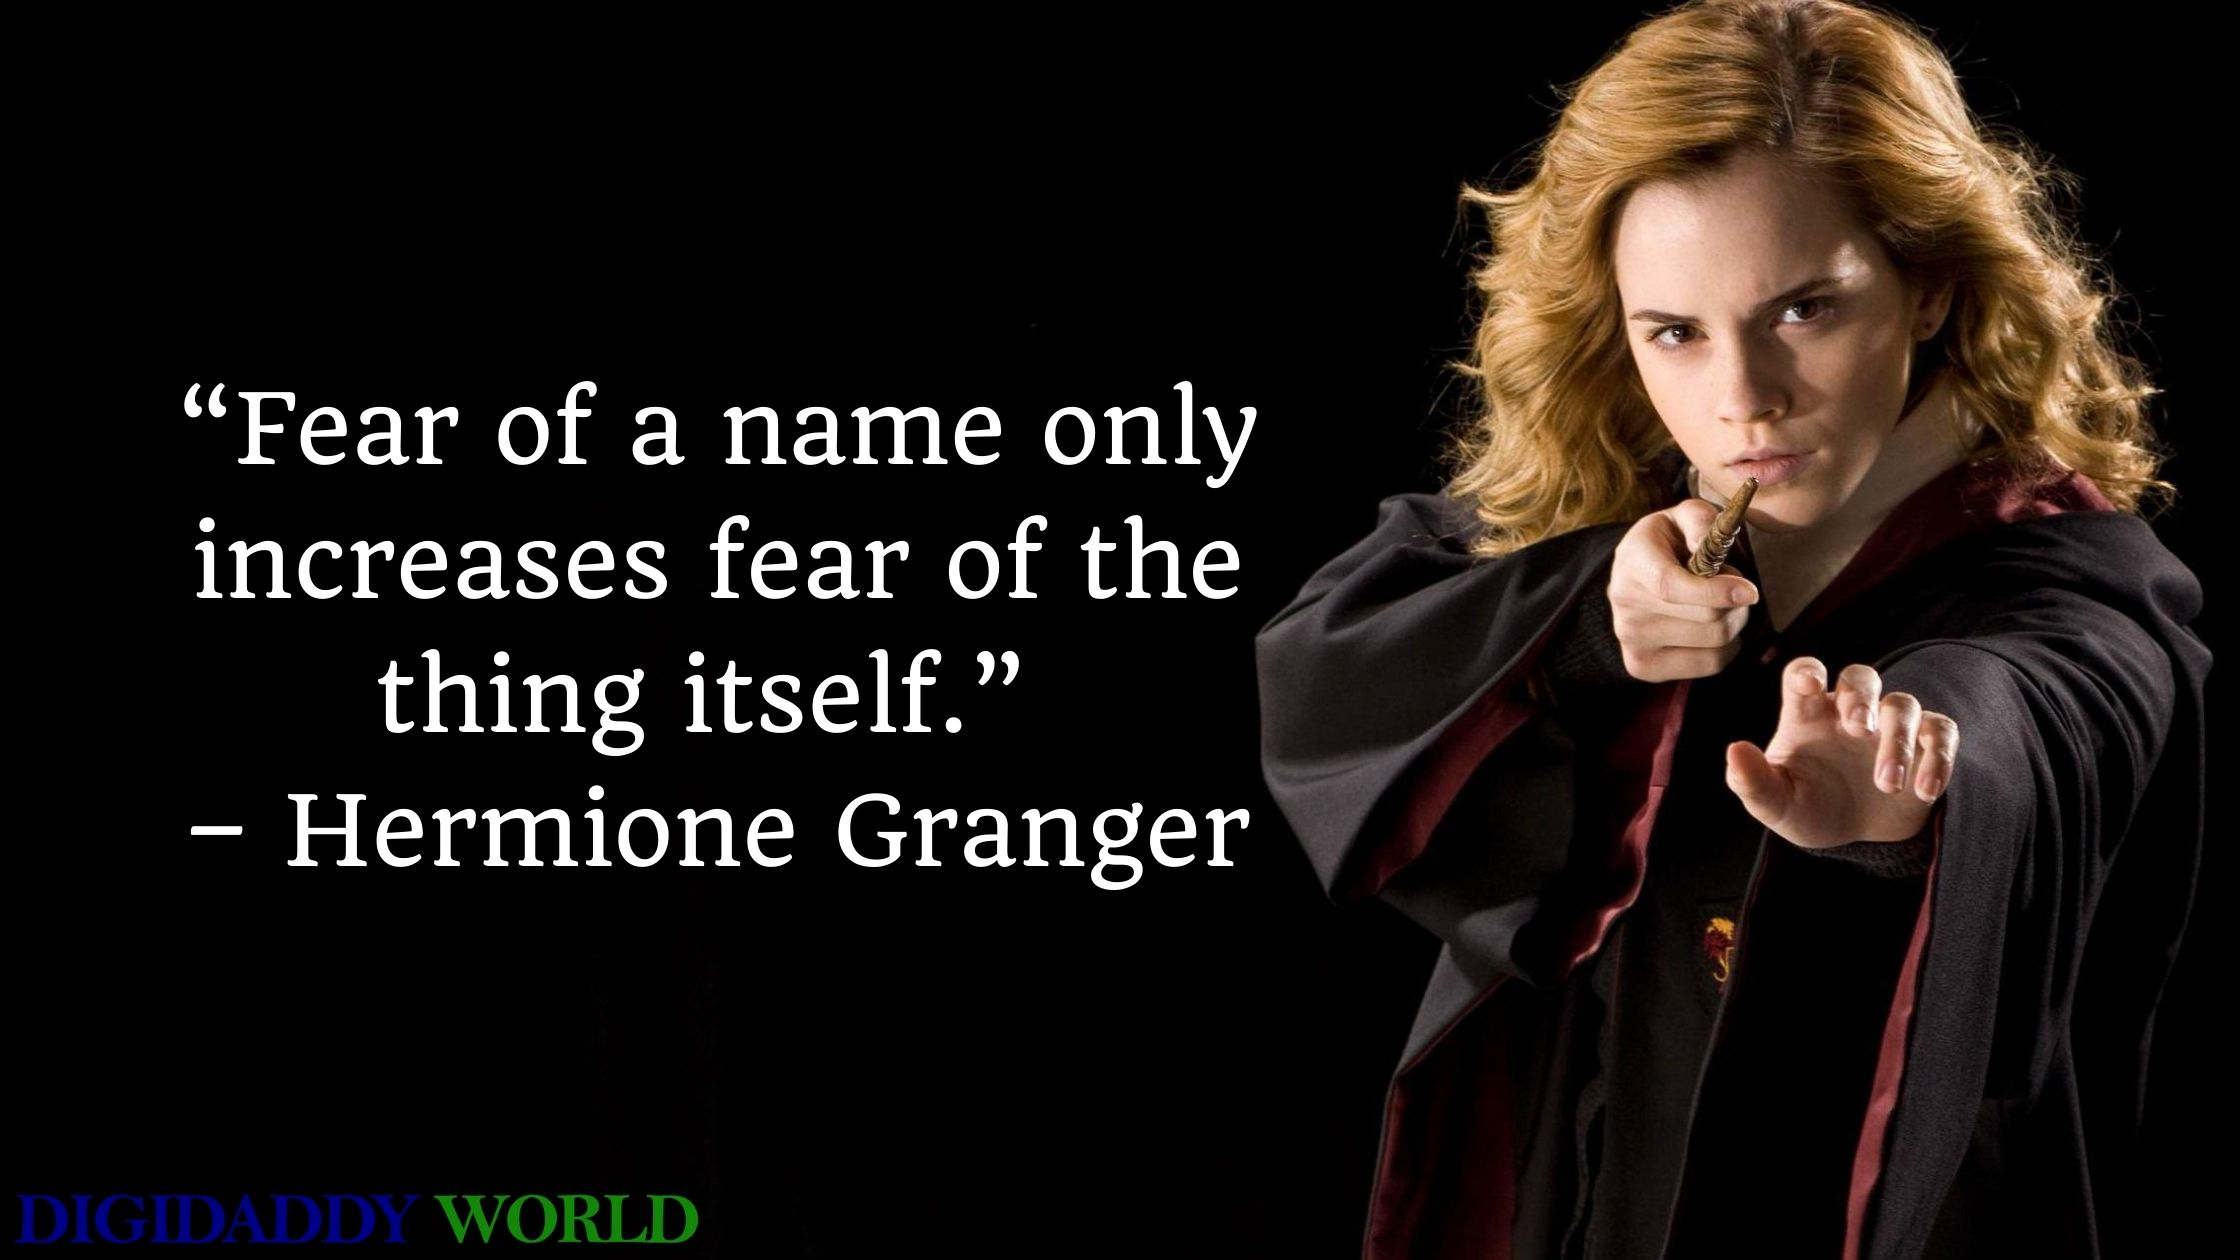 Famous Hermione Granger Iconic Quotes & Best Lines